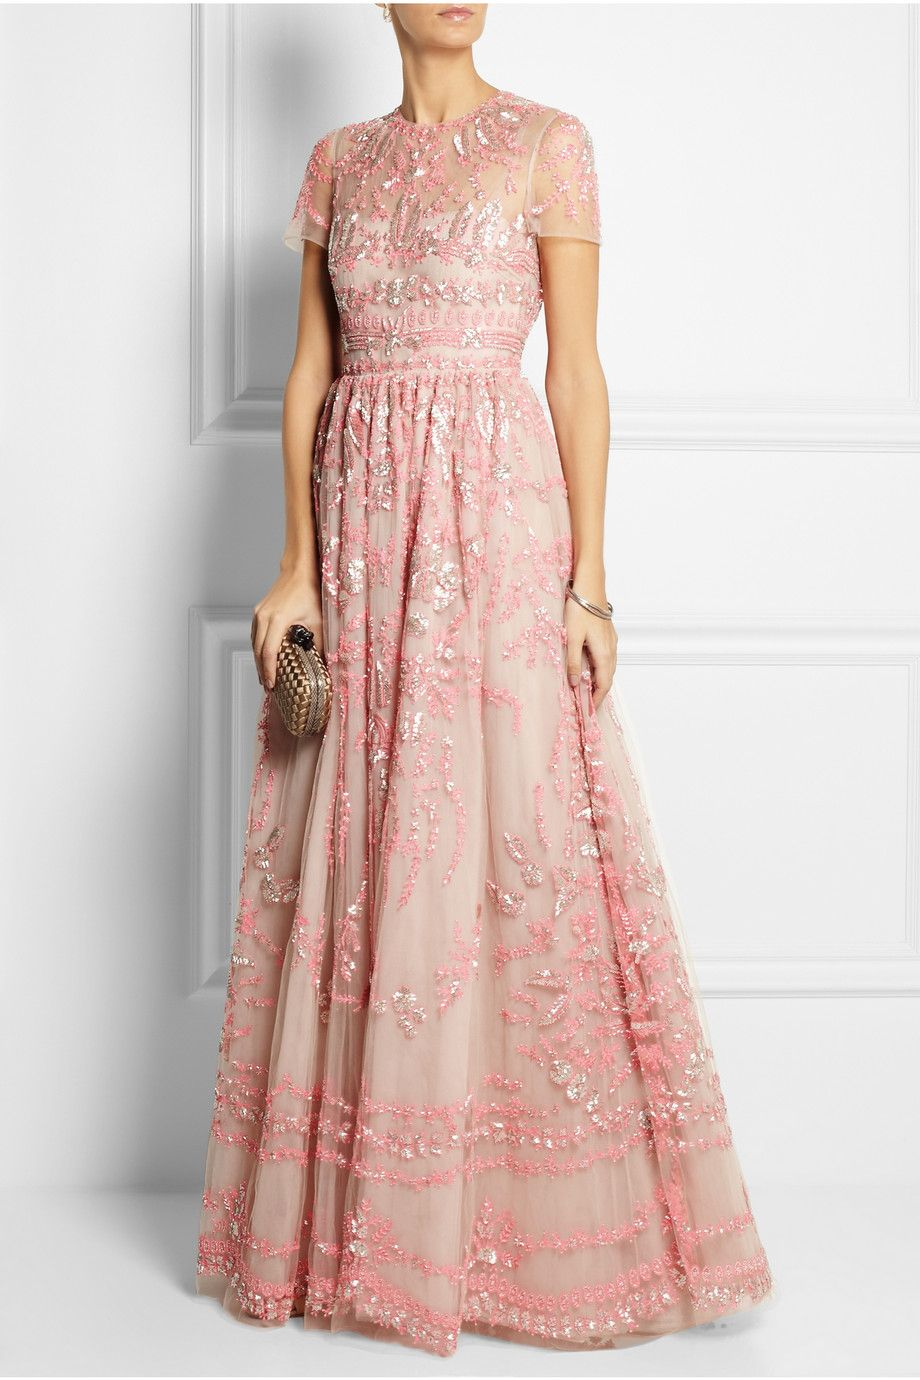 VALENTINO Embellished tulle gown $25,000 The attention to detail in ...